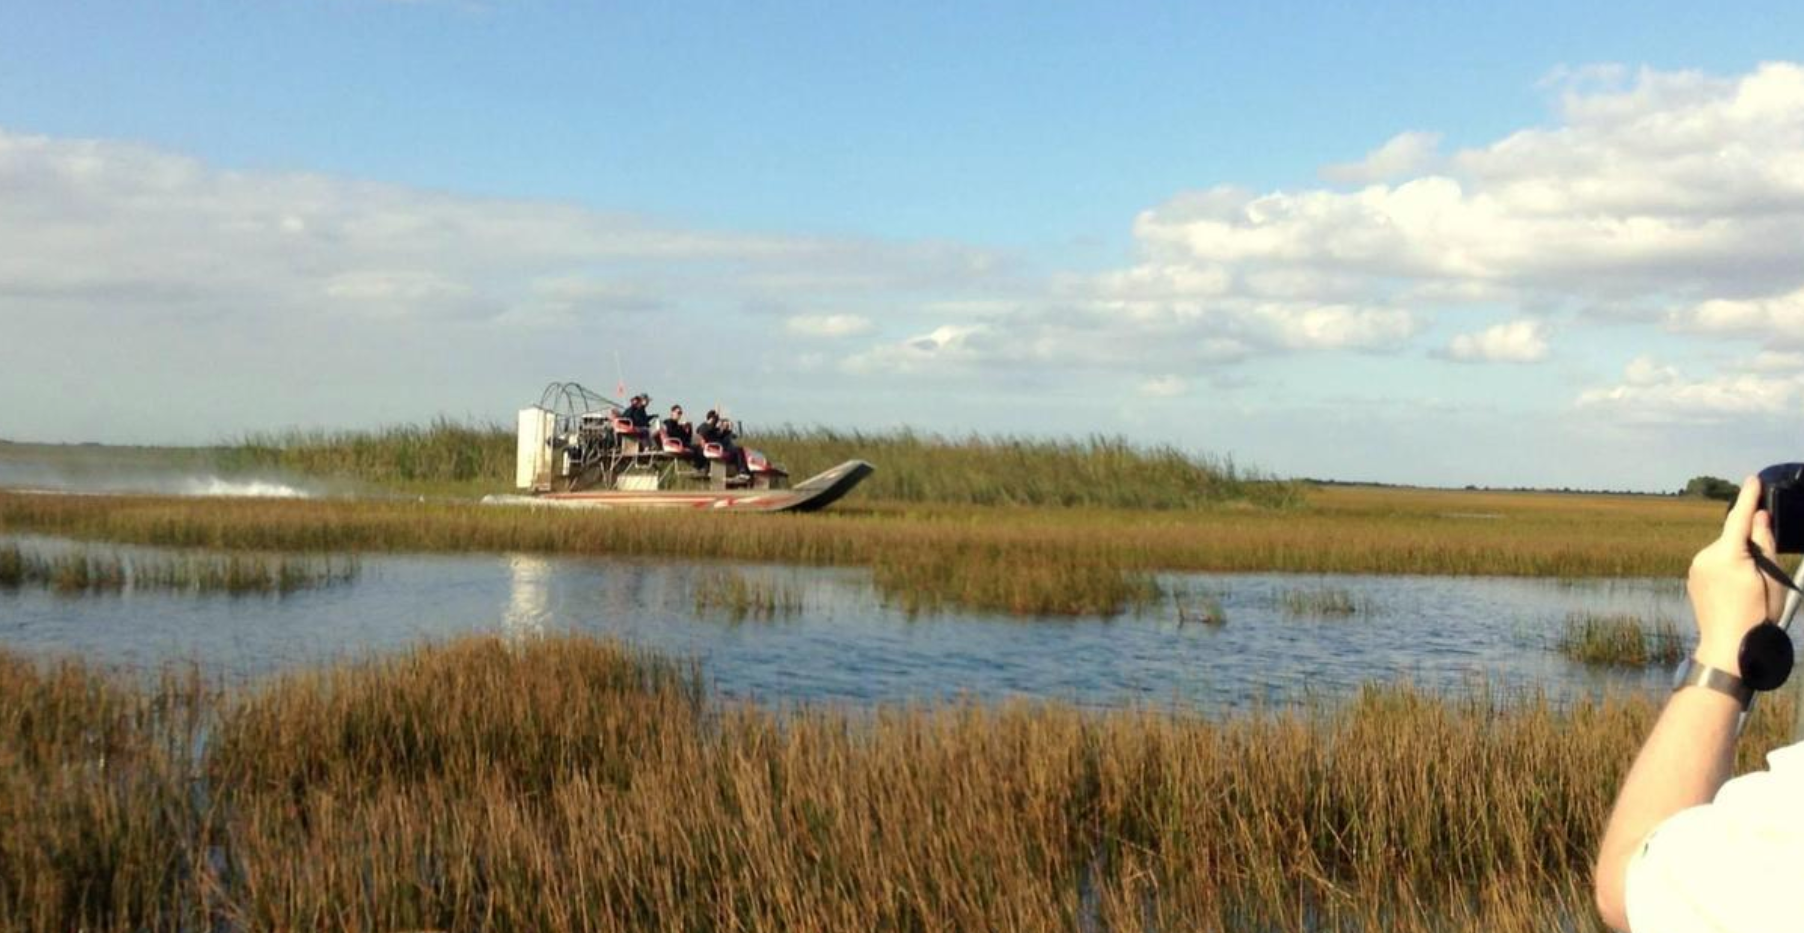 Miami airboat